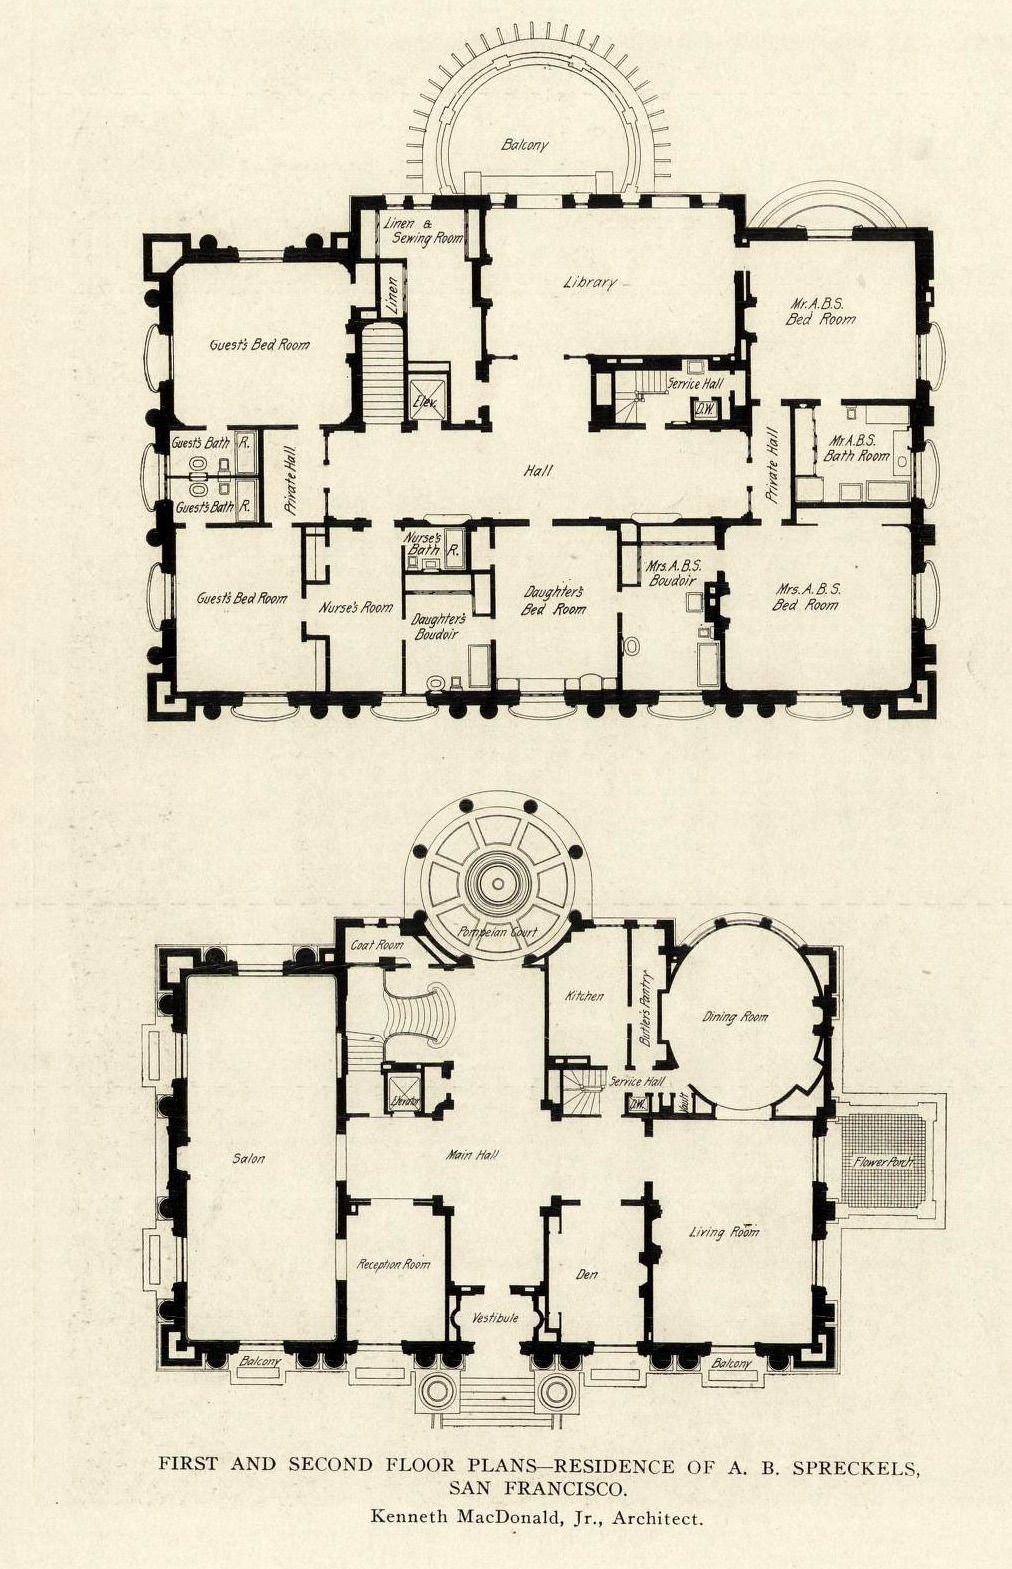 Pin by Hammad Malik on Archi - Floor Plans in 2019 | Floor ... Mansion Floor Plans Steel House on new jersey floor plans, mansion floor plans florida, modern mansion floor plans, mansion room plans, mega mansion floor plans, beverly hills mansions floor plans, mansion floor plans with dimensions, victorian mansion floor plans, knightsbridge floor plans, mansion kitchen floor plans, stone mansion alpine nj floor plans, historic mansion floor plans, sims 3 mansion floor plans, mansion floor plans 15000 plus square feet, bed bath floor plans, mansion gothic house plan, mansion beach house plans, big mansion floor plans, estate home plans,